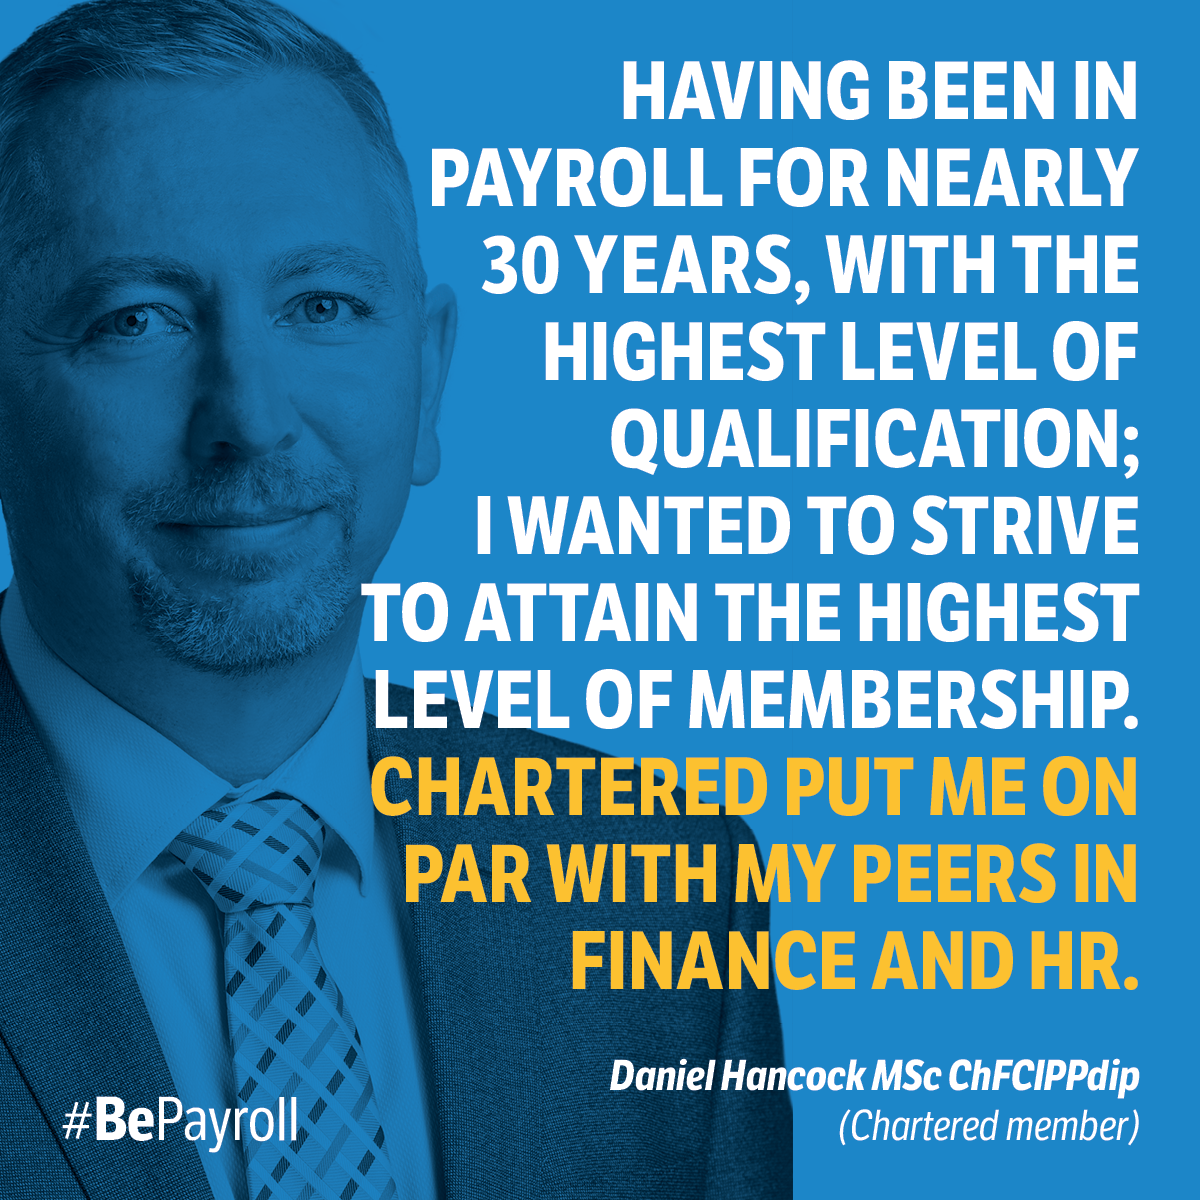 19.12.12 Be Payroll Social Quotes - Daniel Hancock (Dec 2019).png